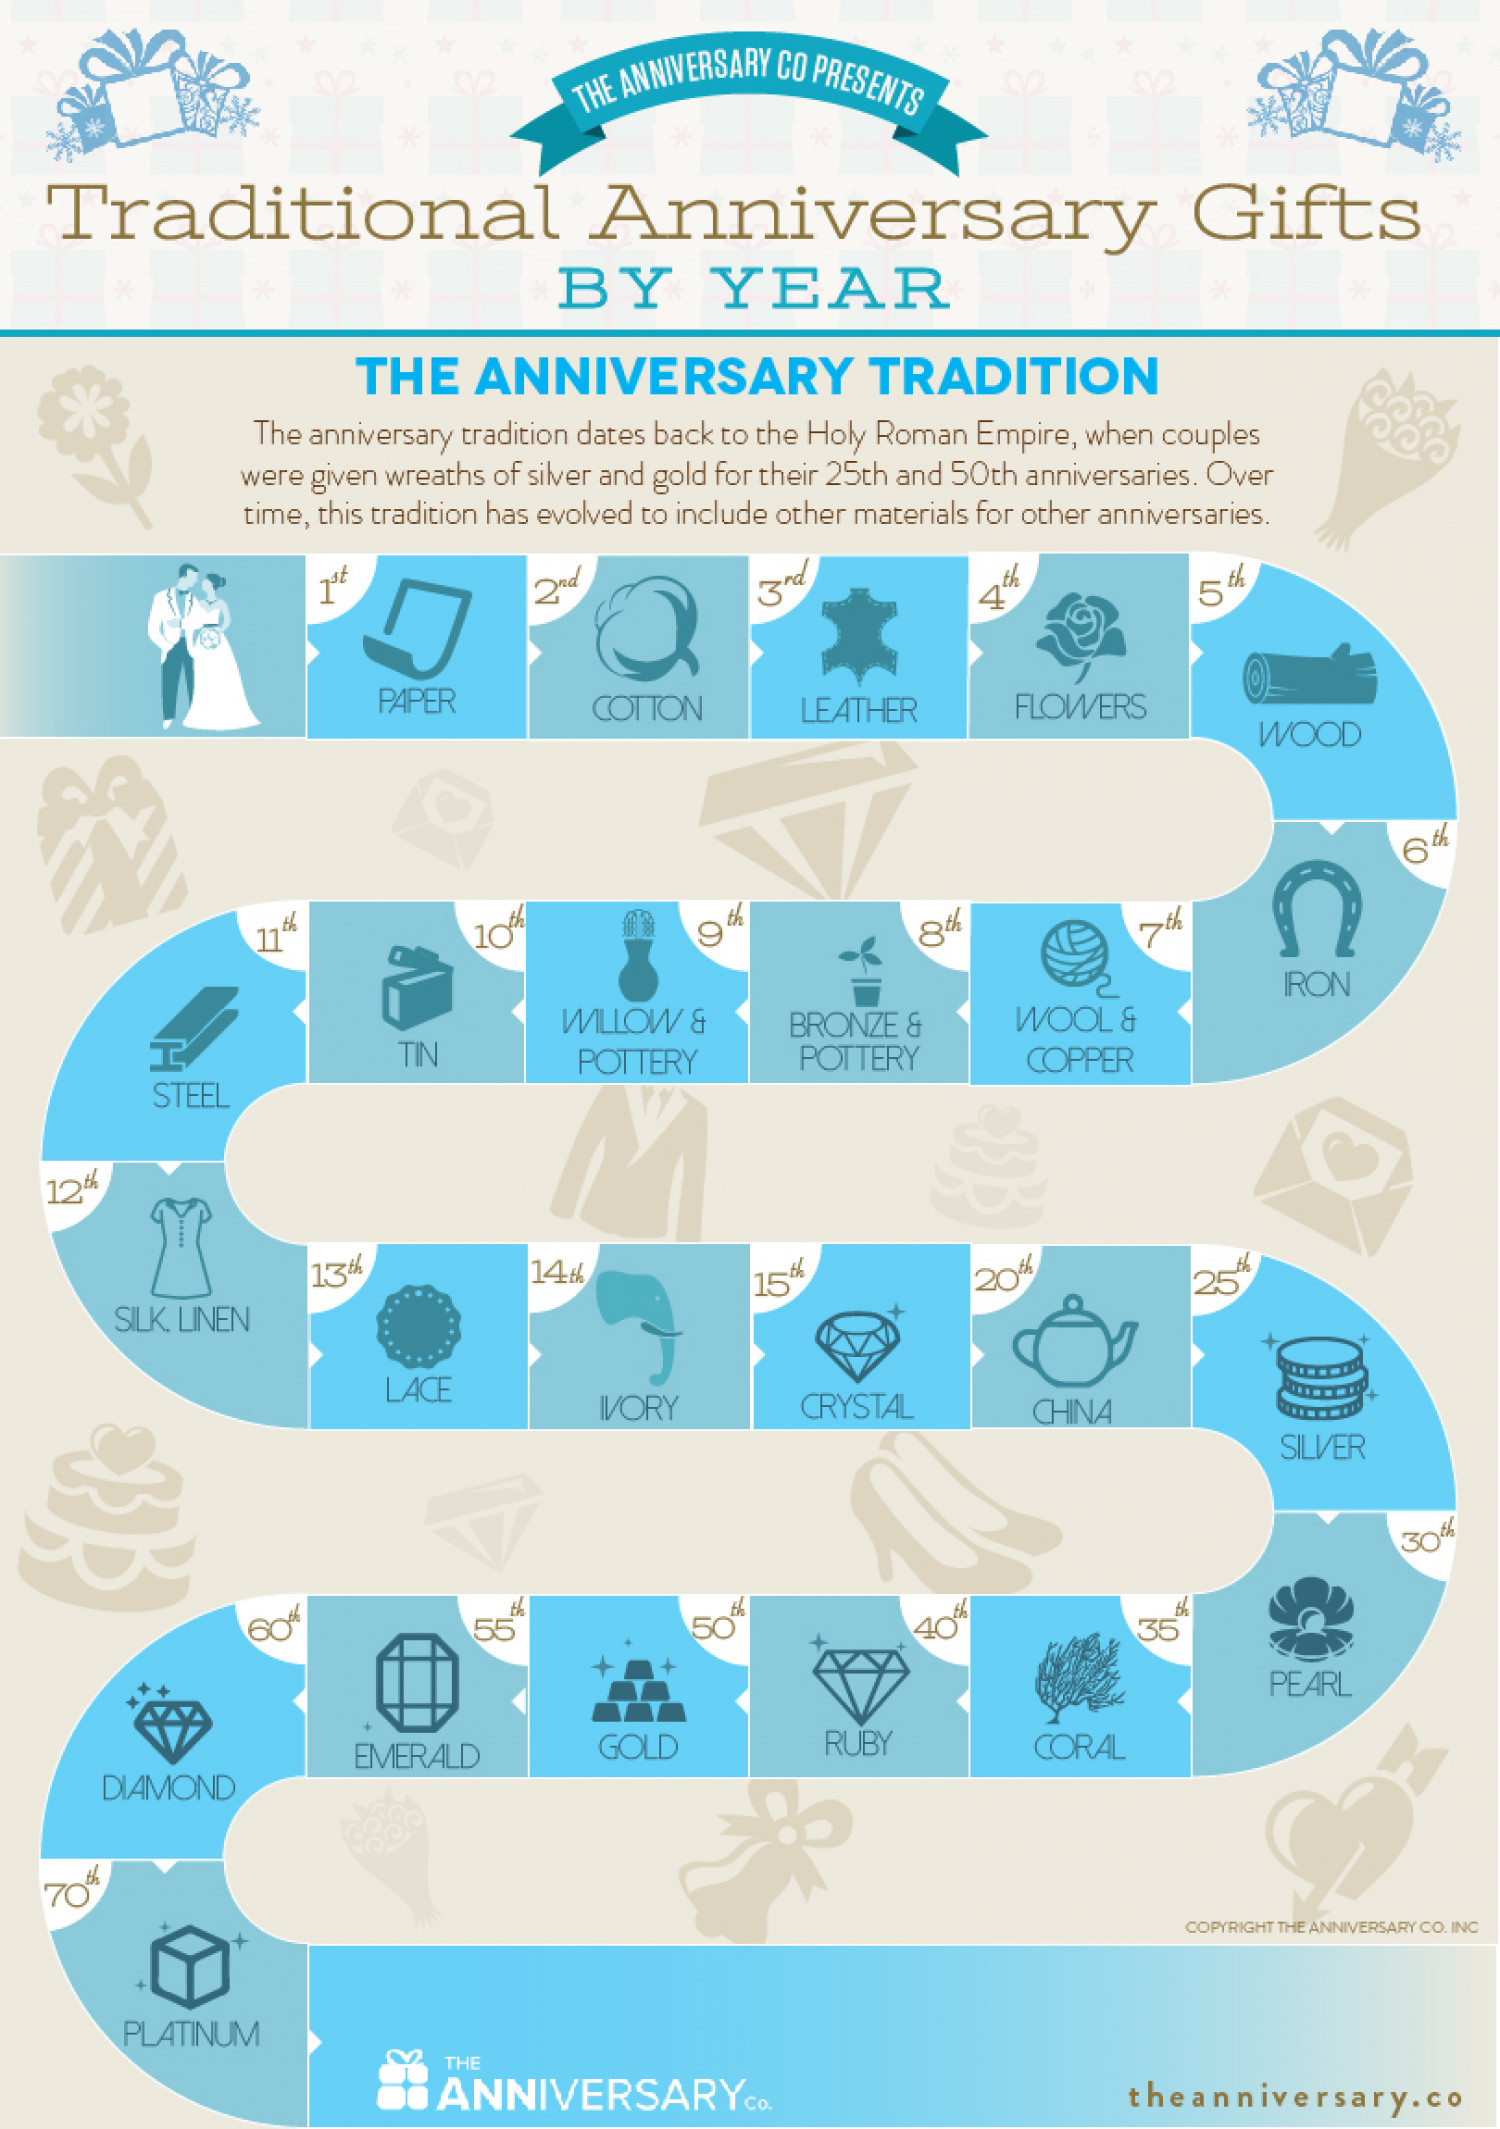 what is the traditional anniversary gifts by year